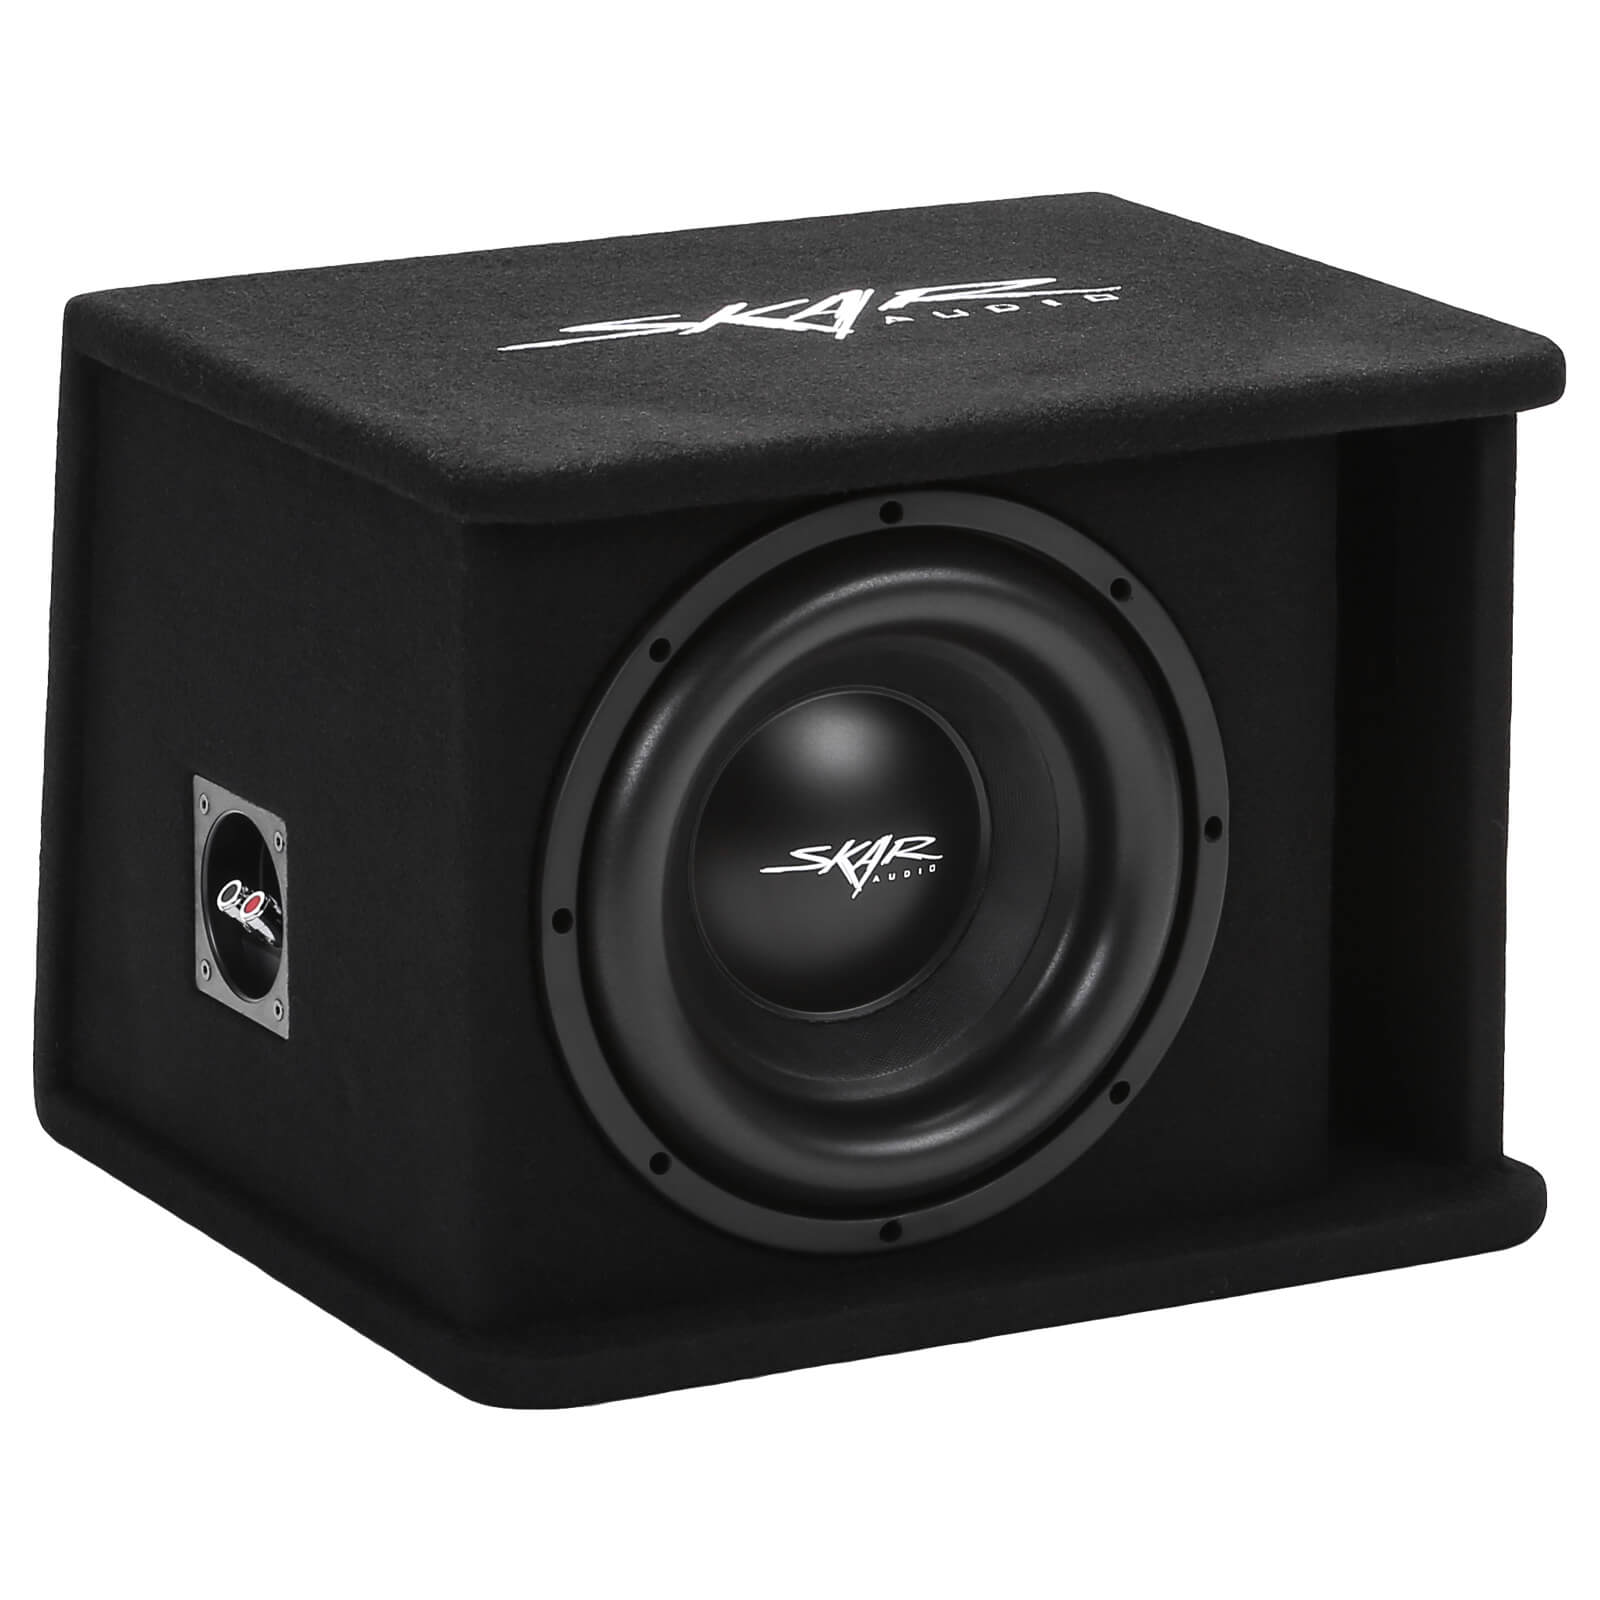 Skar Audio Single 12 Complete 1,200 Watt SDR Series Subwoofer Bass Package Includes Loaded Enclosure with Amplifier